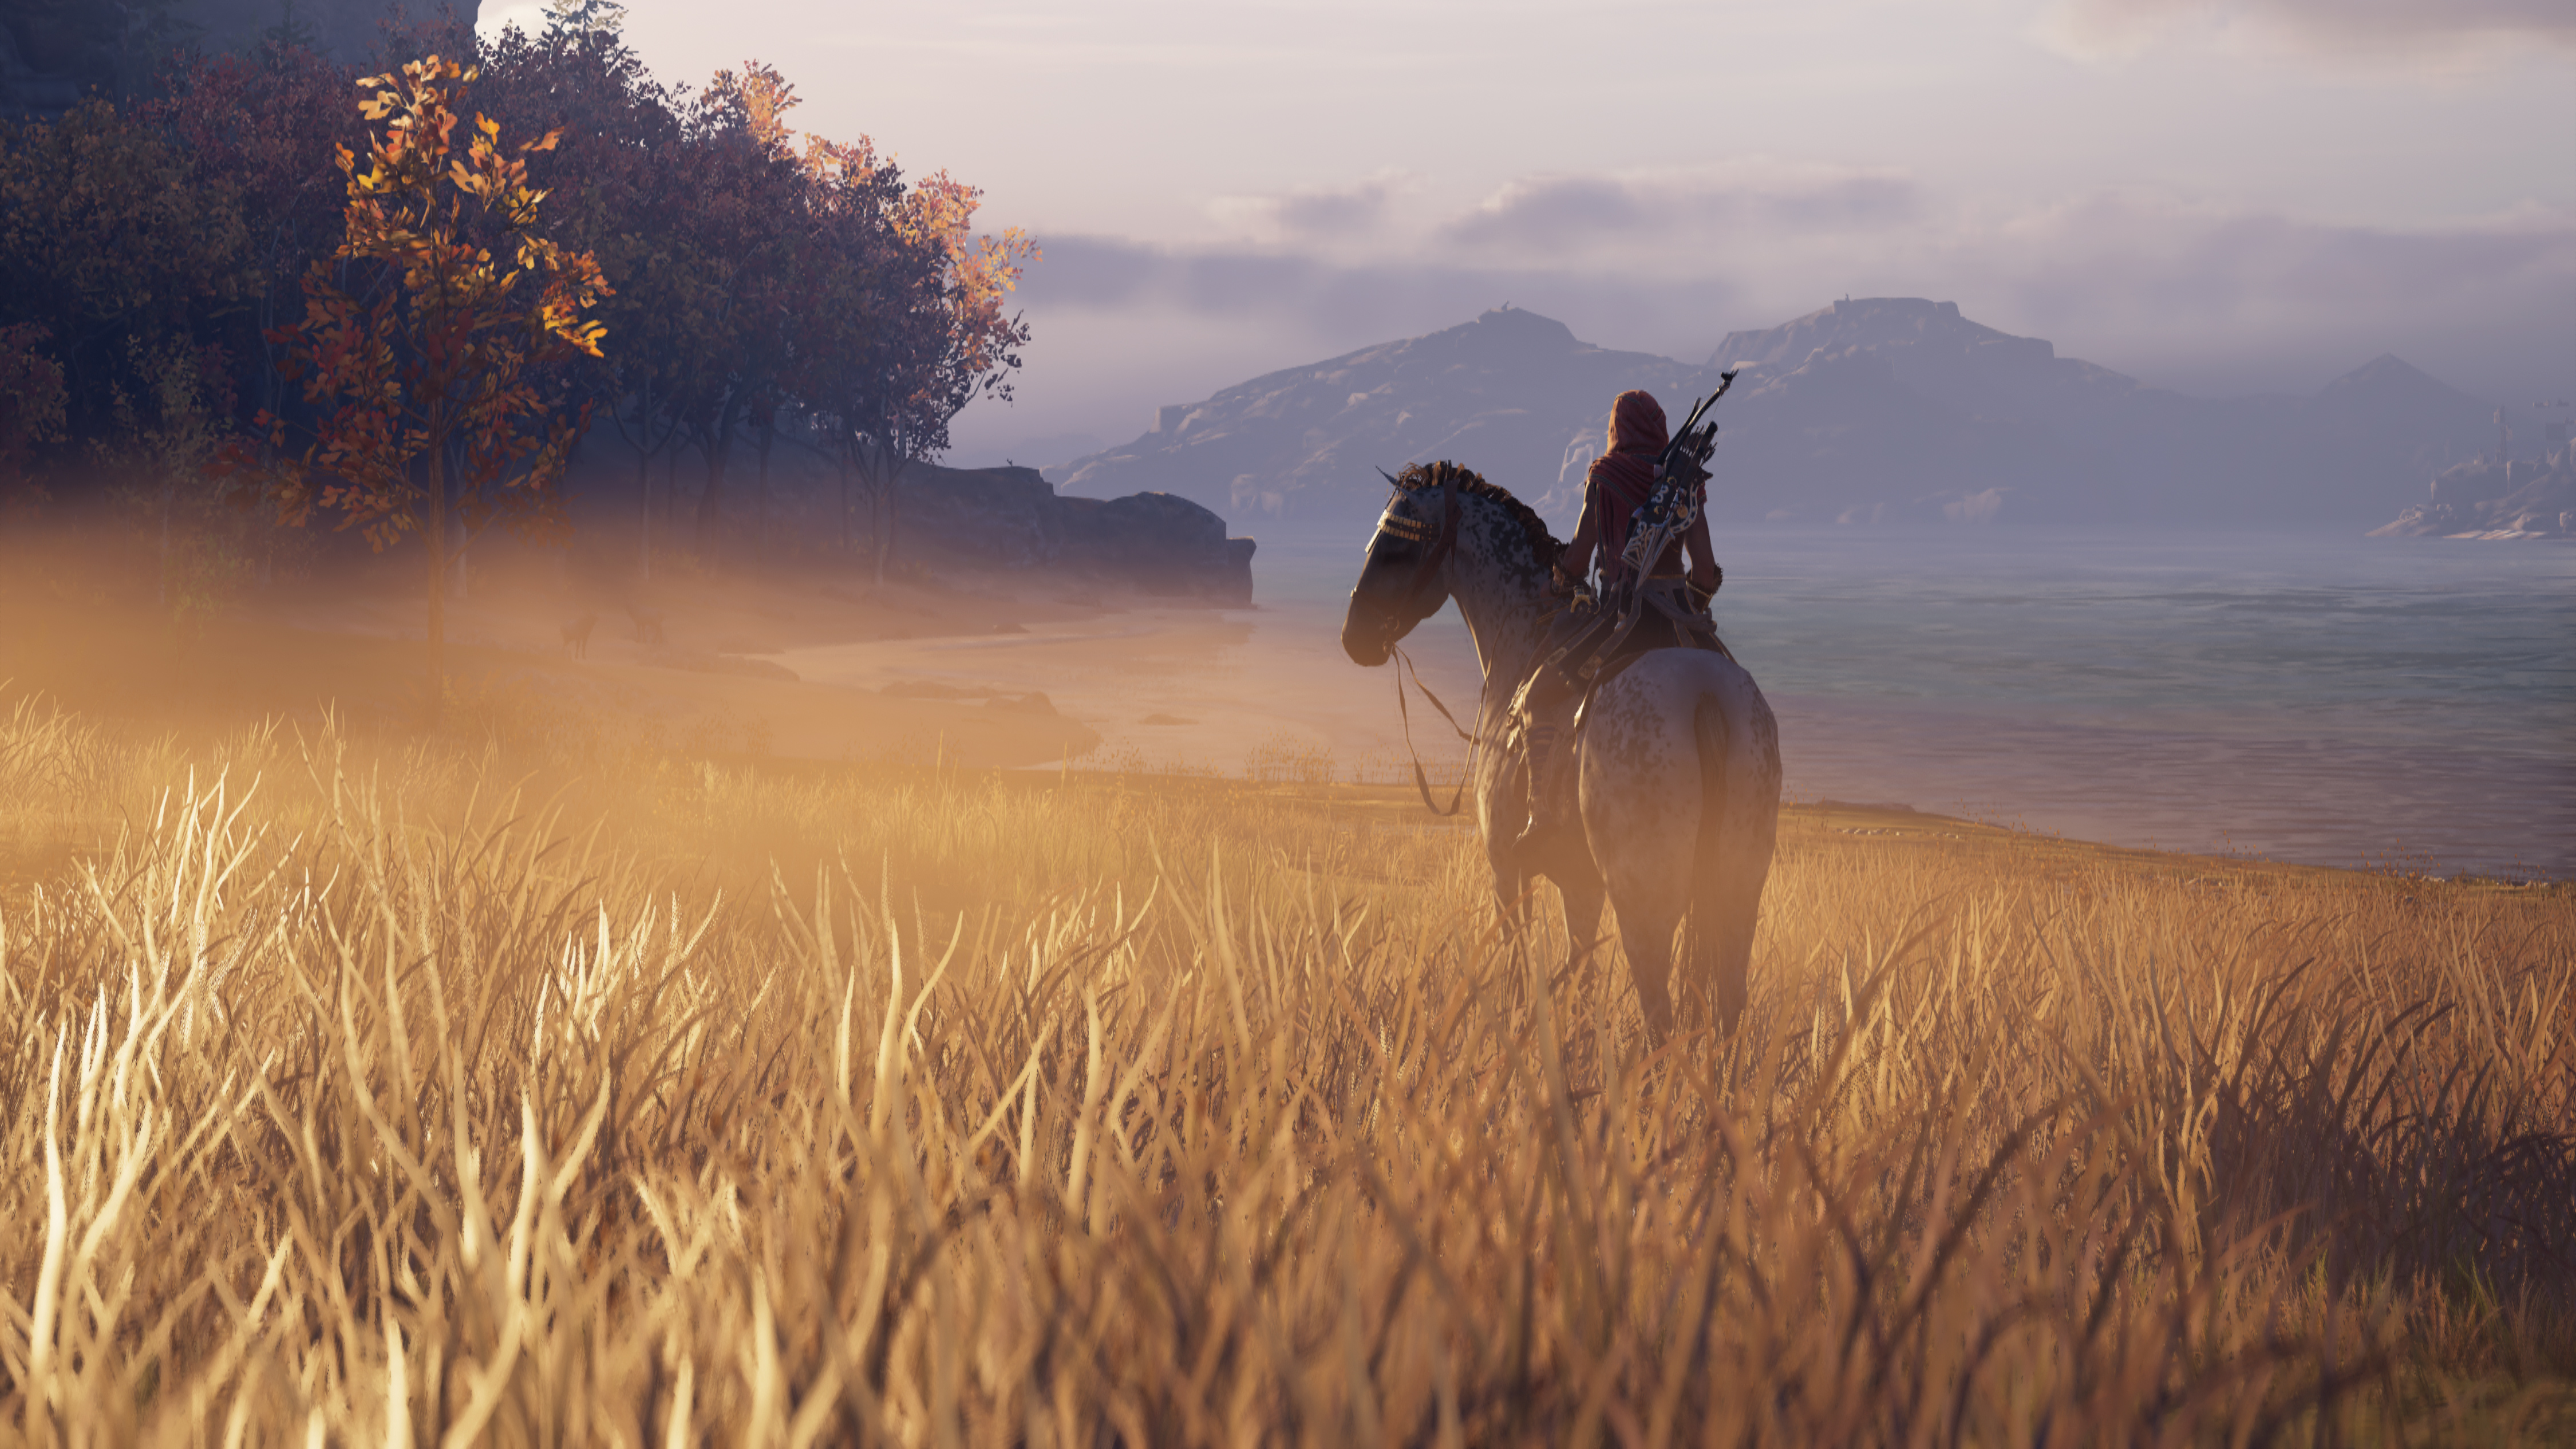 Assassins Creed Odyssey Somewhere Lost 4k, HD Games, 4k ...